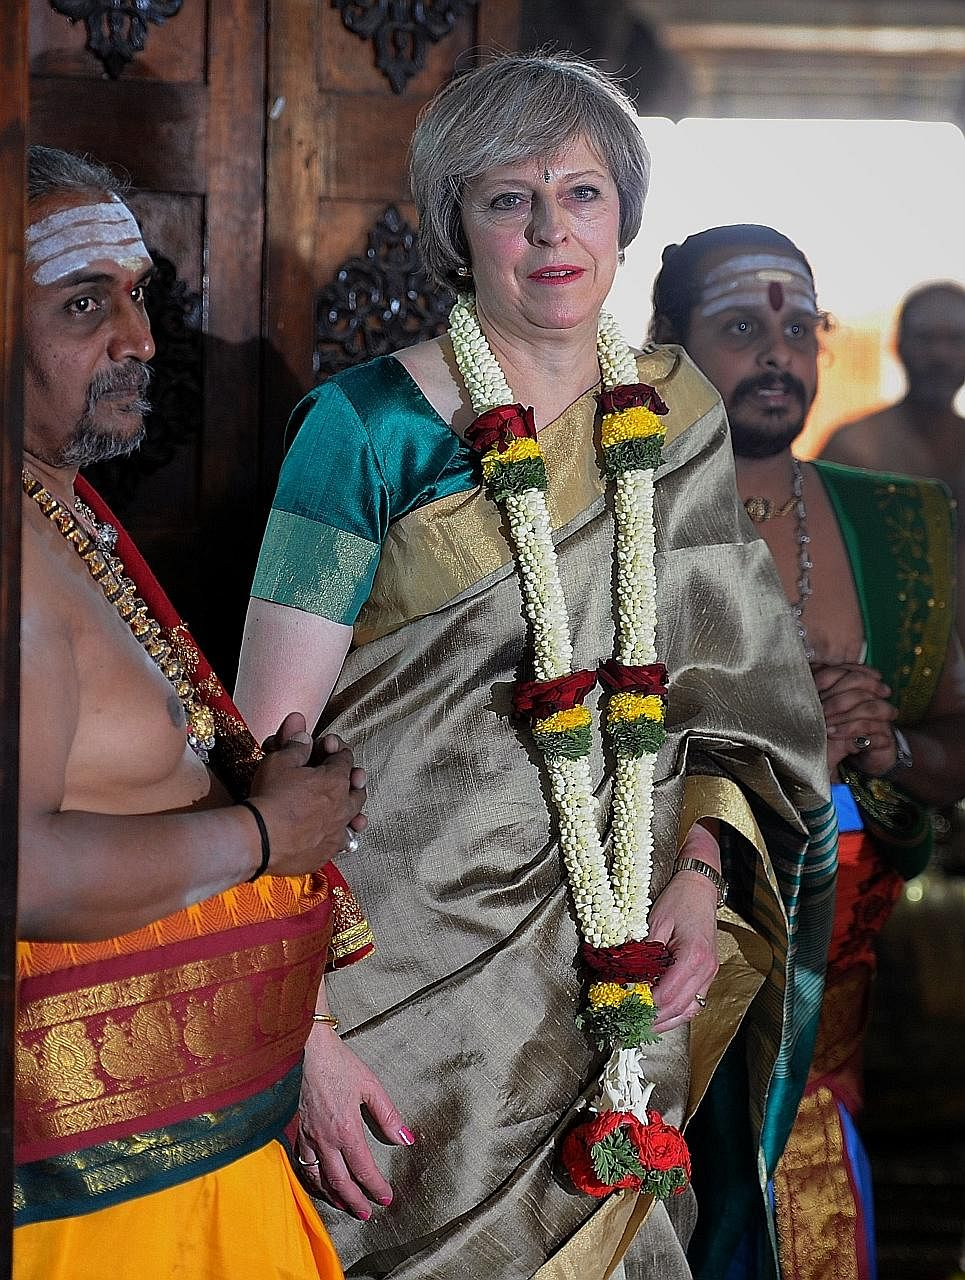 Mrs May visiting Someshwara Temple in Bengaluru on Tuesday. She is in India to ready the ground for post-Brexit trade deals. While pledging to make it easier to do business with the country, she is unwilling to ease visa restrictions, a key demand fr